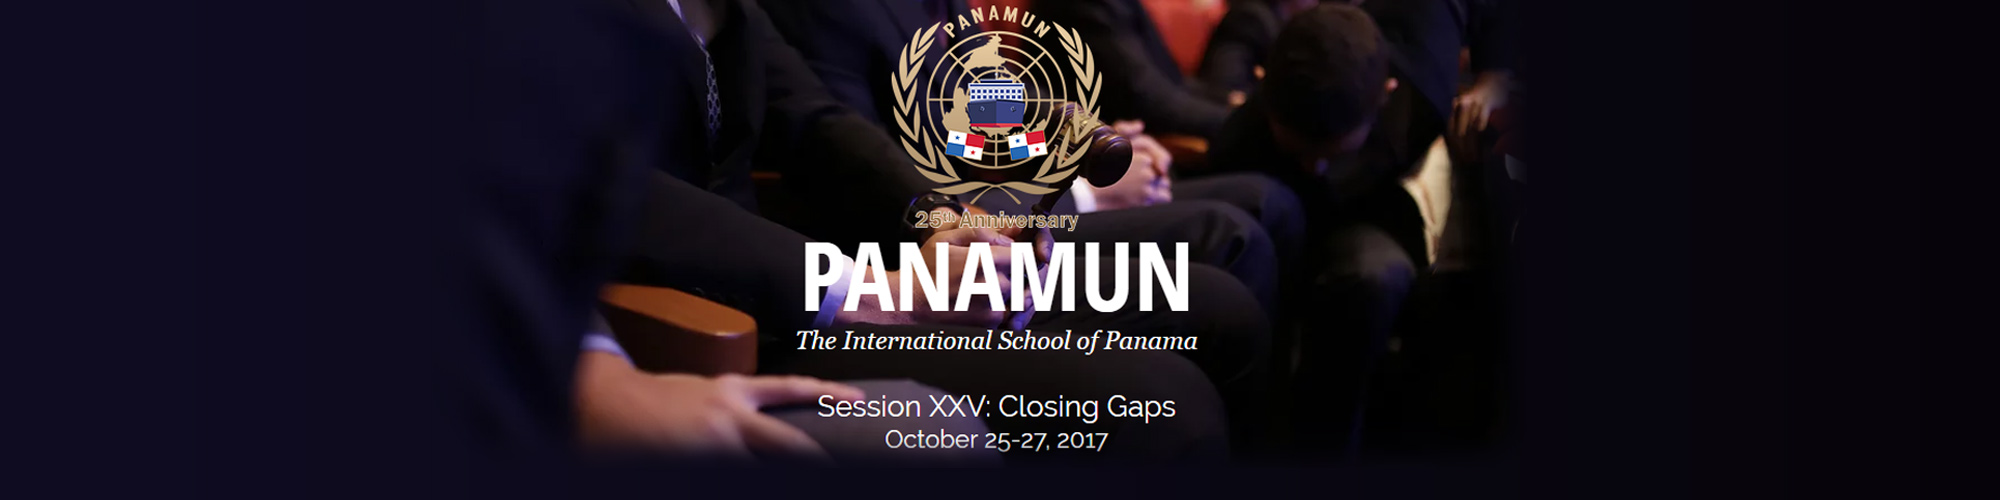 25th Anniversary Panamun at The International School of Panama - Session XXV: Closing Gaps October 25-27, 2017